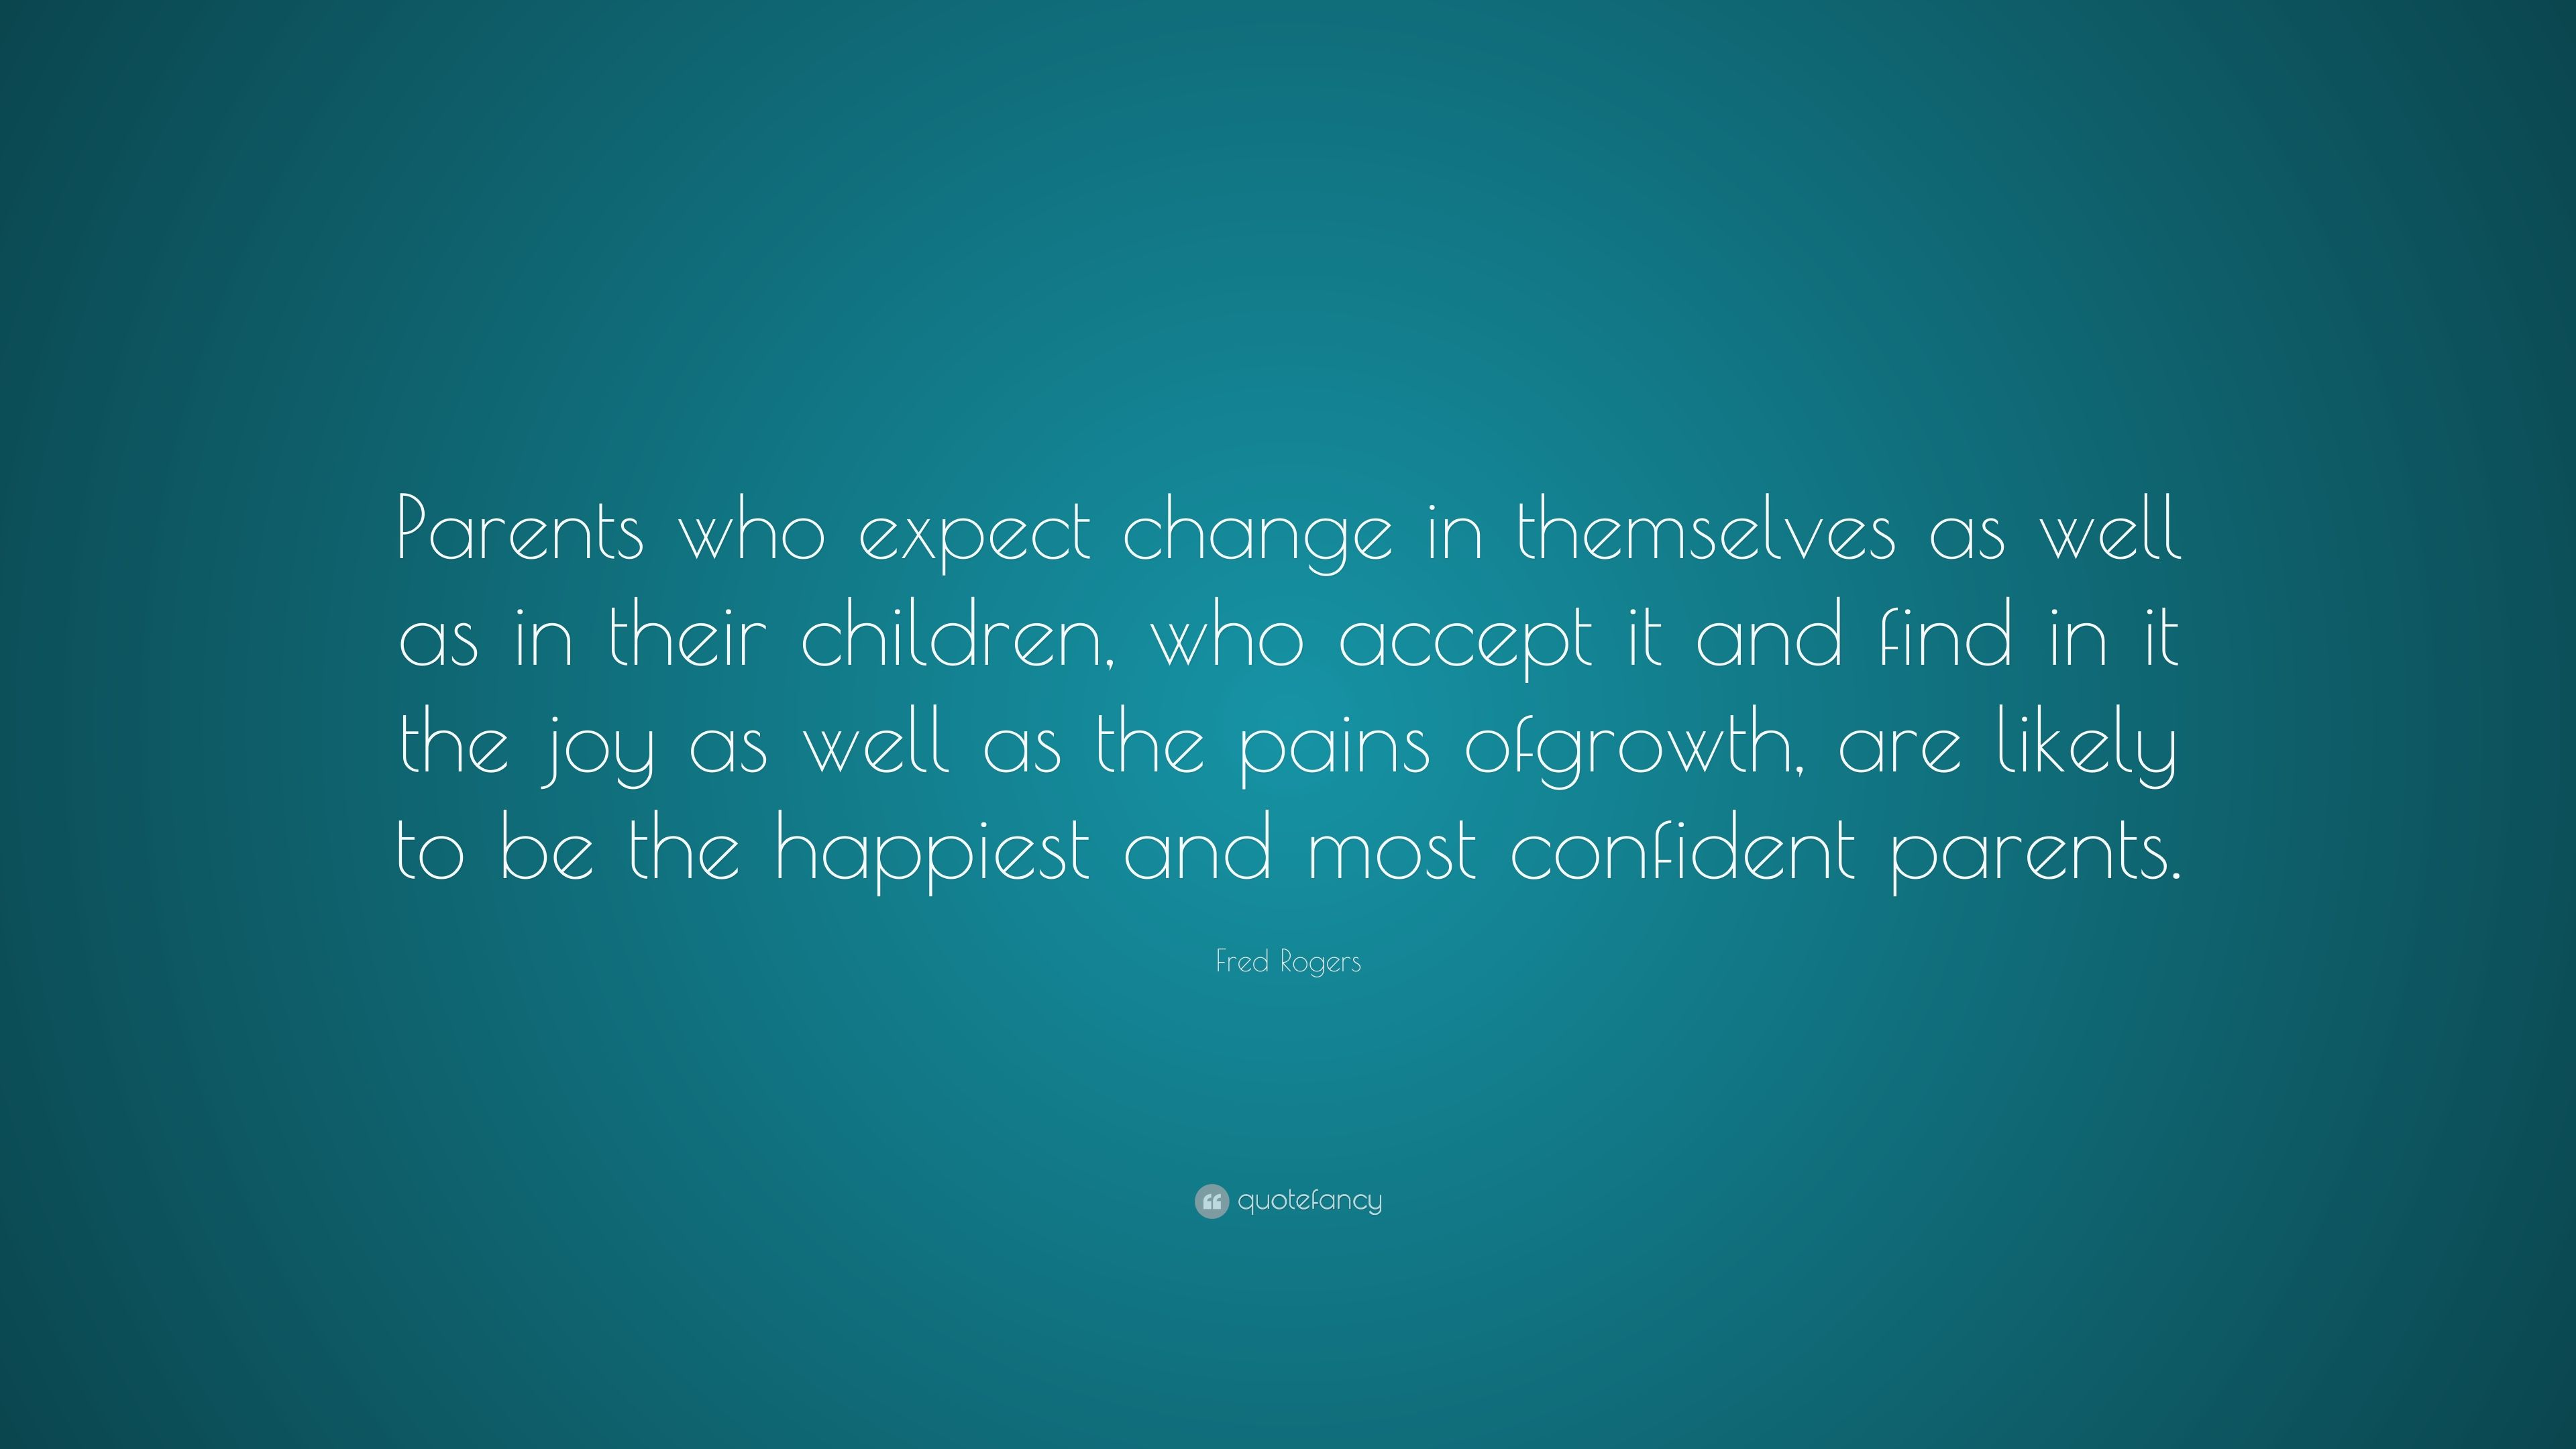 Fred Rogers Quote Parents Who Expect Change In Themselves As Well As In Their Children Who Accept It And Find In It The Joy As Well As Th 7 Wallpapers Quotefancy